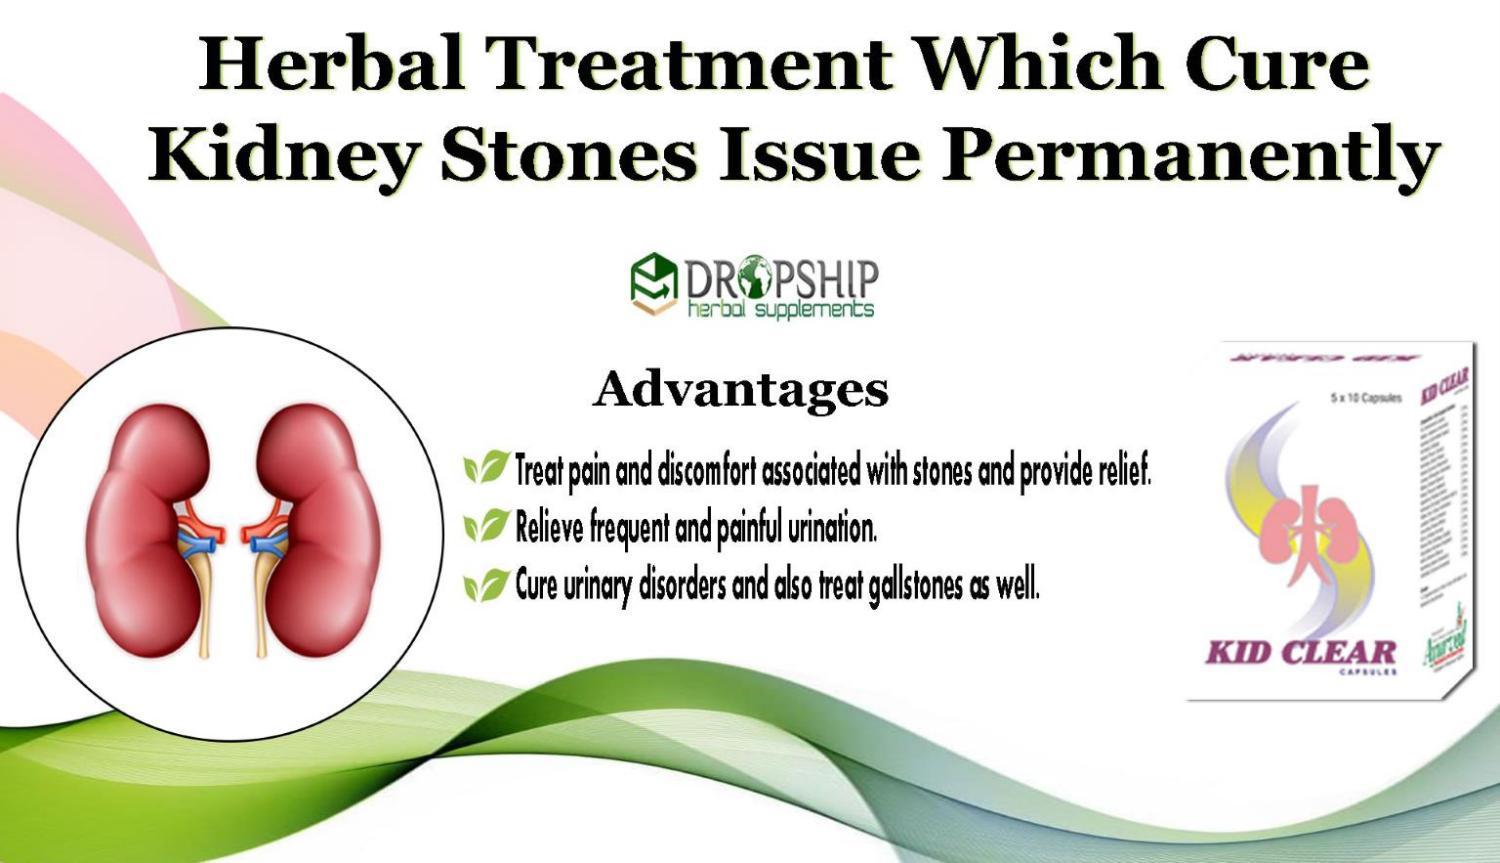 Herbal Treatment Which Cure Kidney Stones Issue Permanently By Aisfordhenderson Issuu